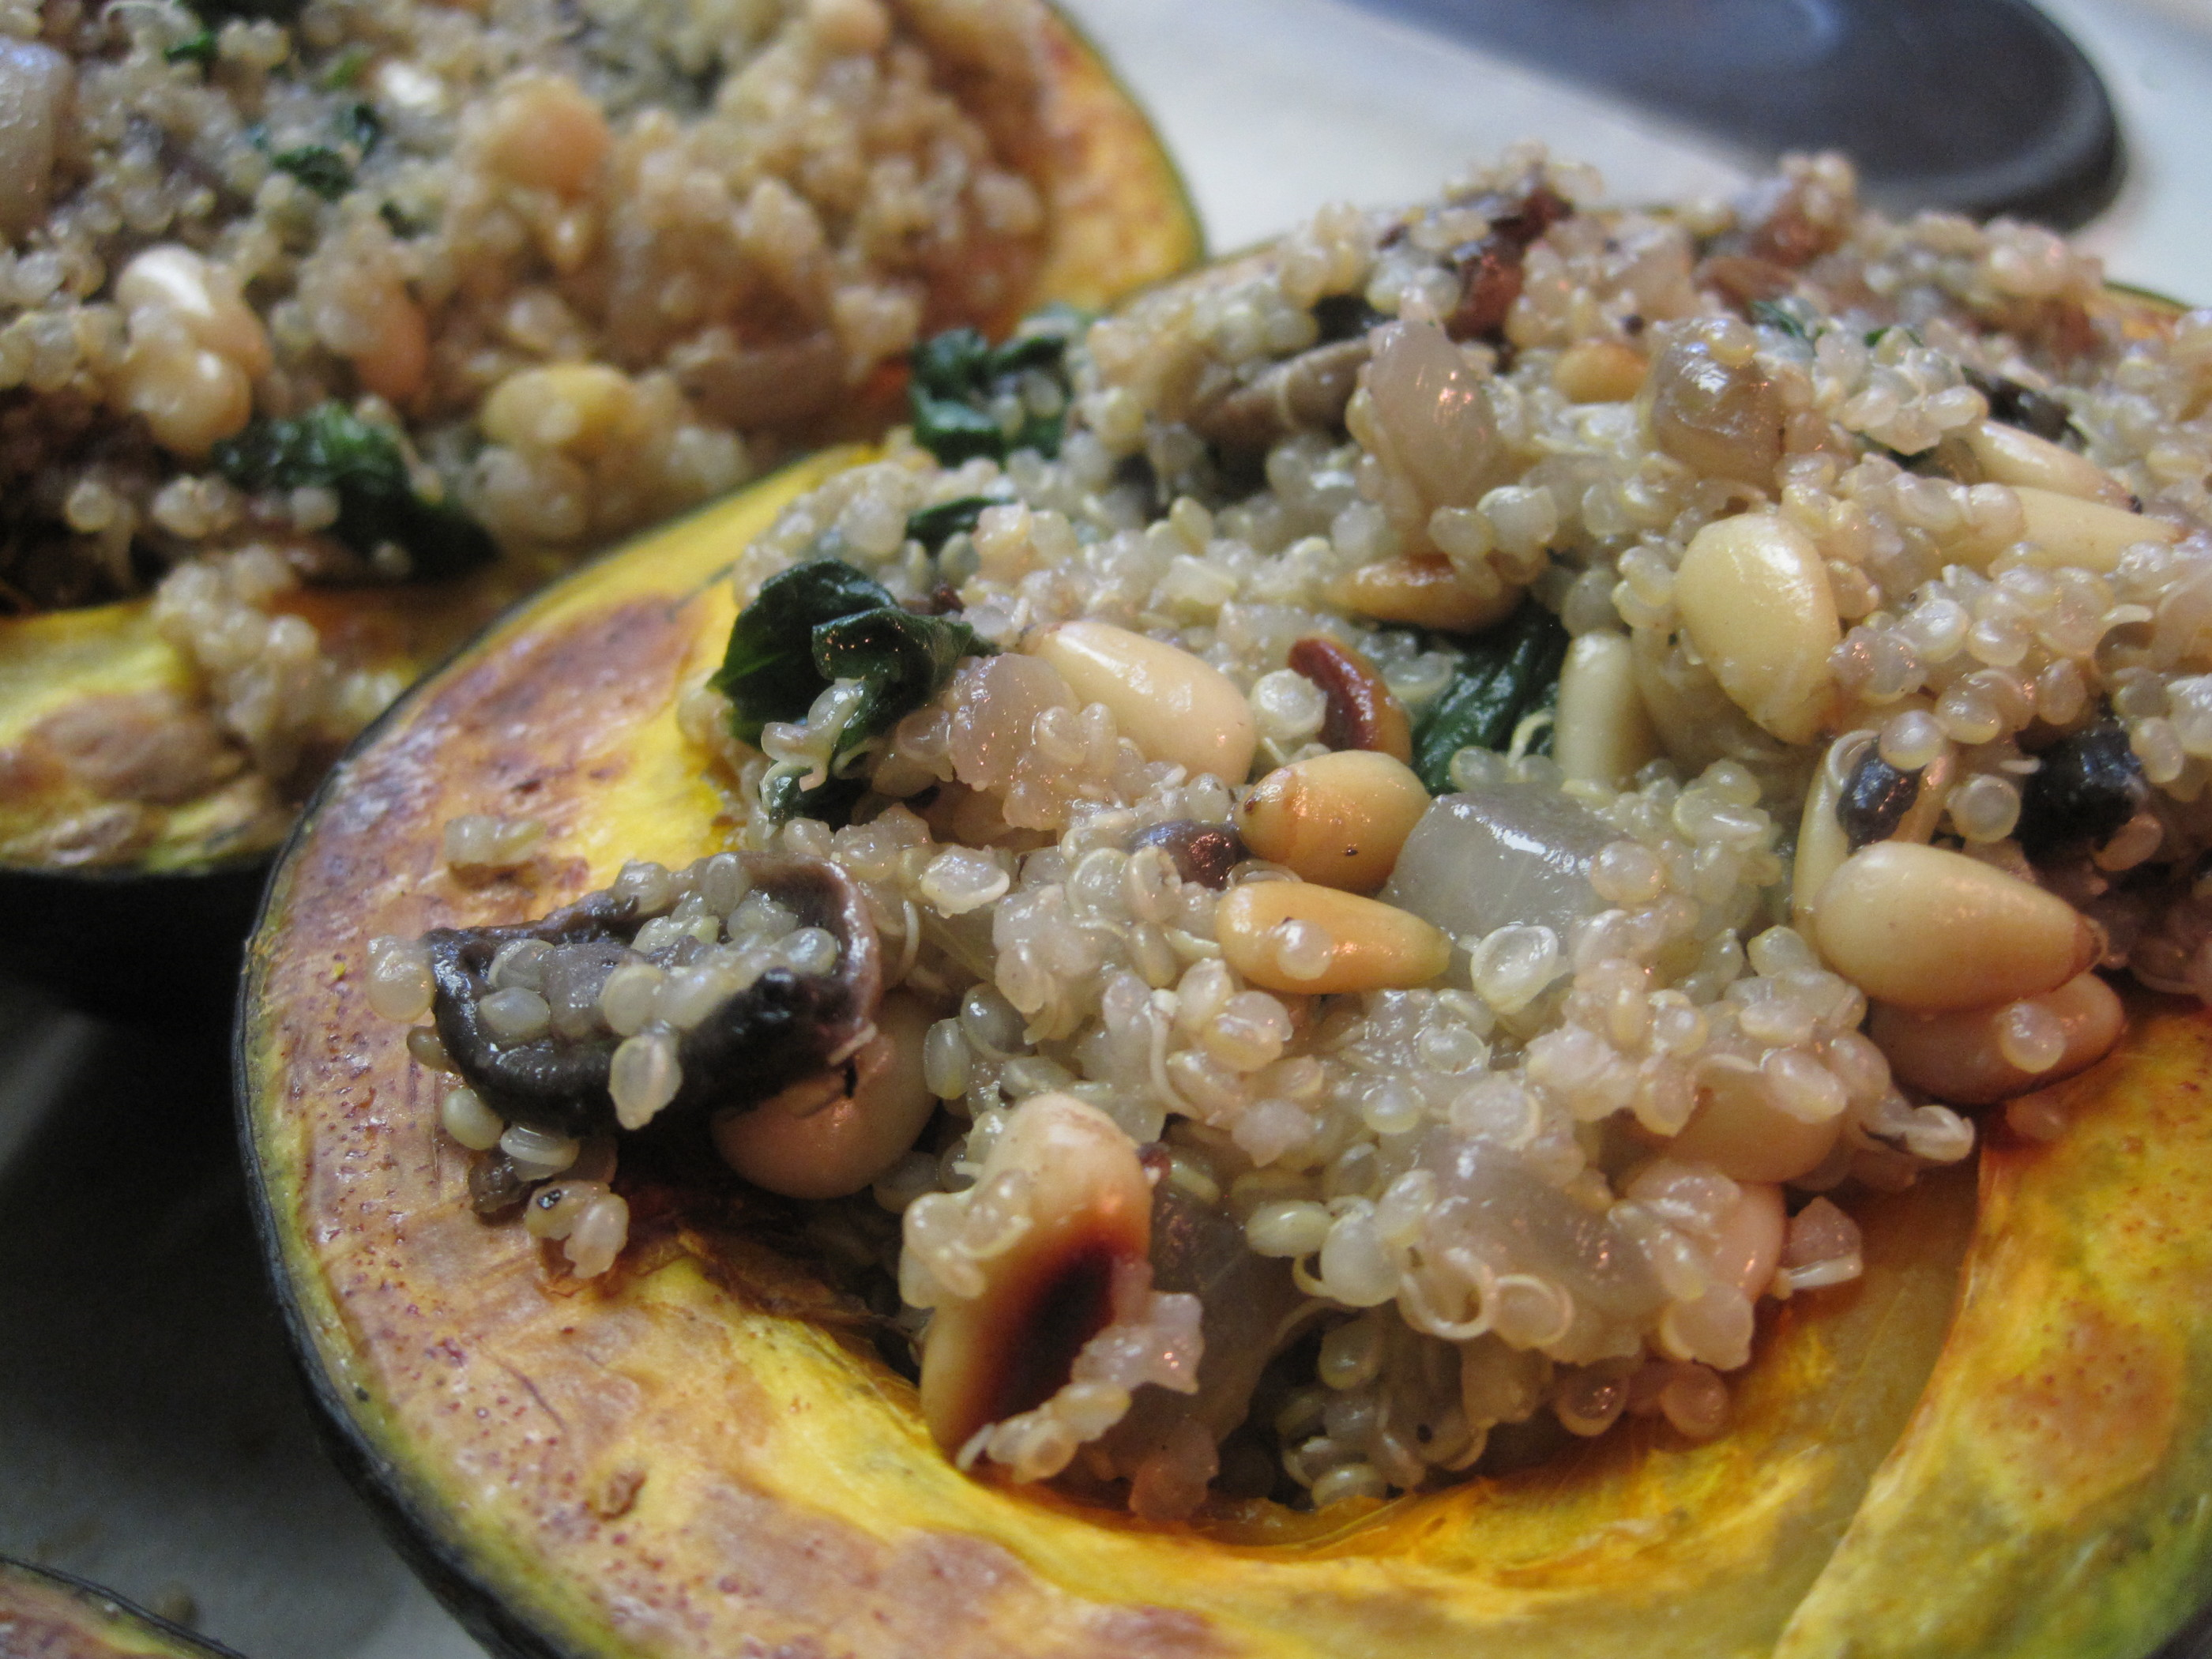 Spinach, Mushroom, Quinoa and Pine Nut Stuffed Squash